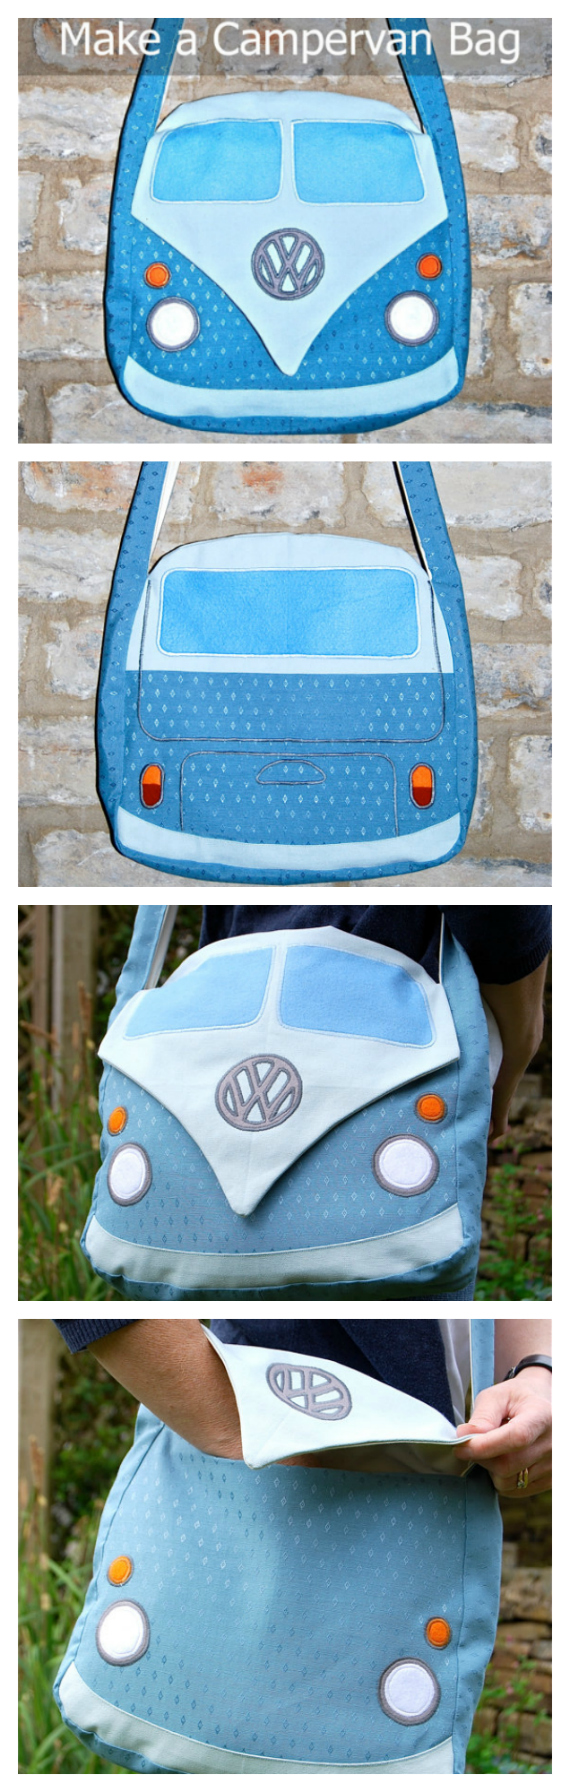 """If you want to make a really fun bag for yourself, family or friends then you can get this downloadable pdf pattern here. This sewing pattern allows you to make this very unique bag based on the Splitscreen Campervan. This bag will have you standing out from the crowd and will get you many admirers. The finished bag measures approximately 12"""" by 12"""" with a strap long enough to cross over your body. The bag also has a handy pocket inside to help you keep all your essentials organised."""